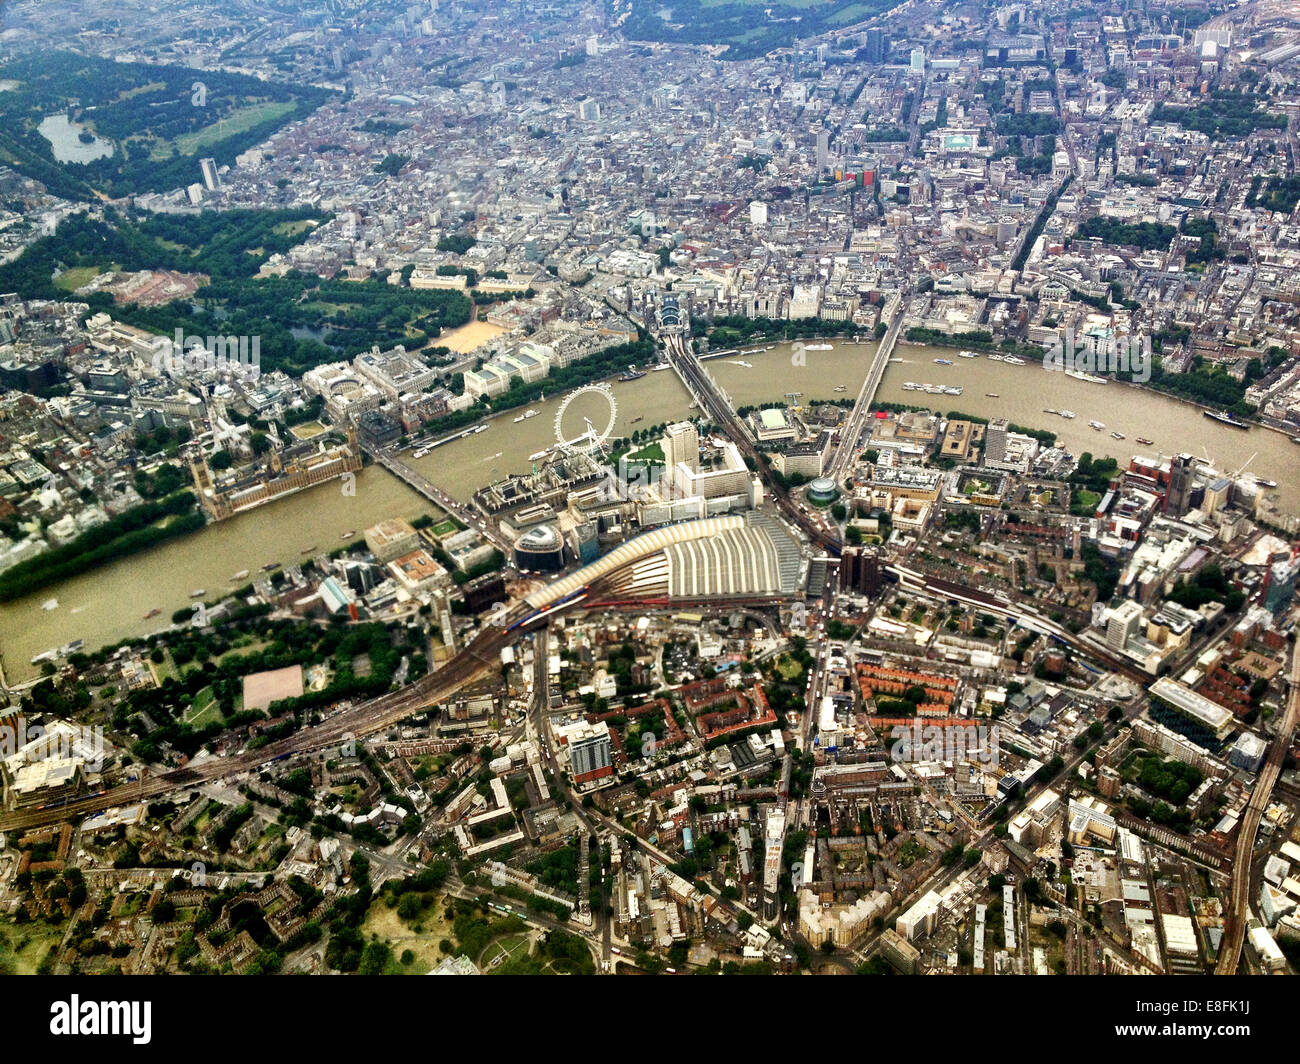 Aerial view of London, England, UK - Stock Image